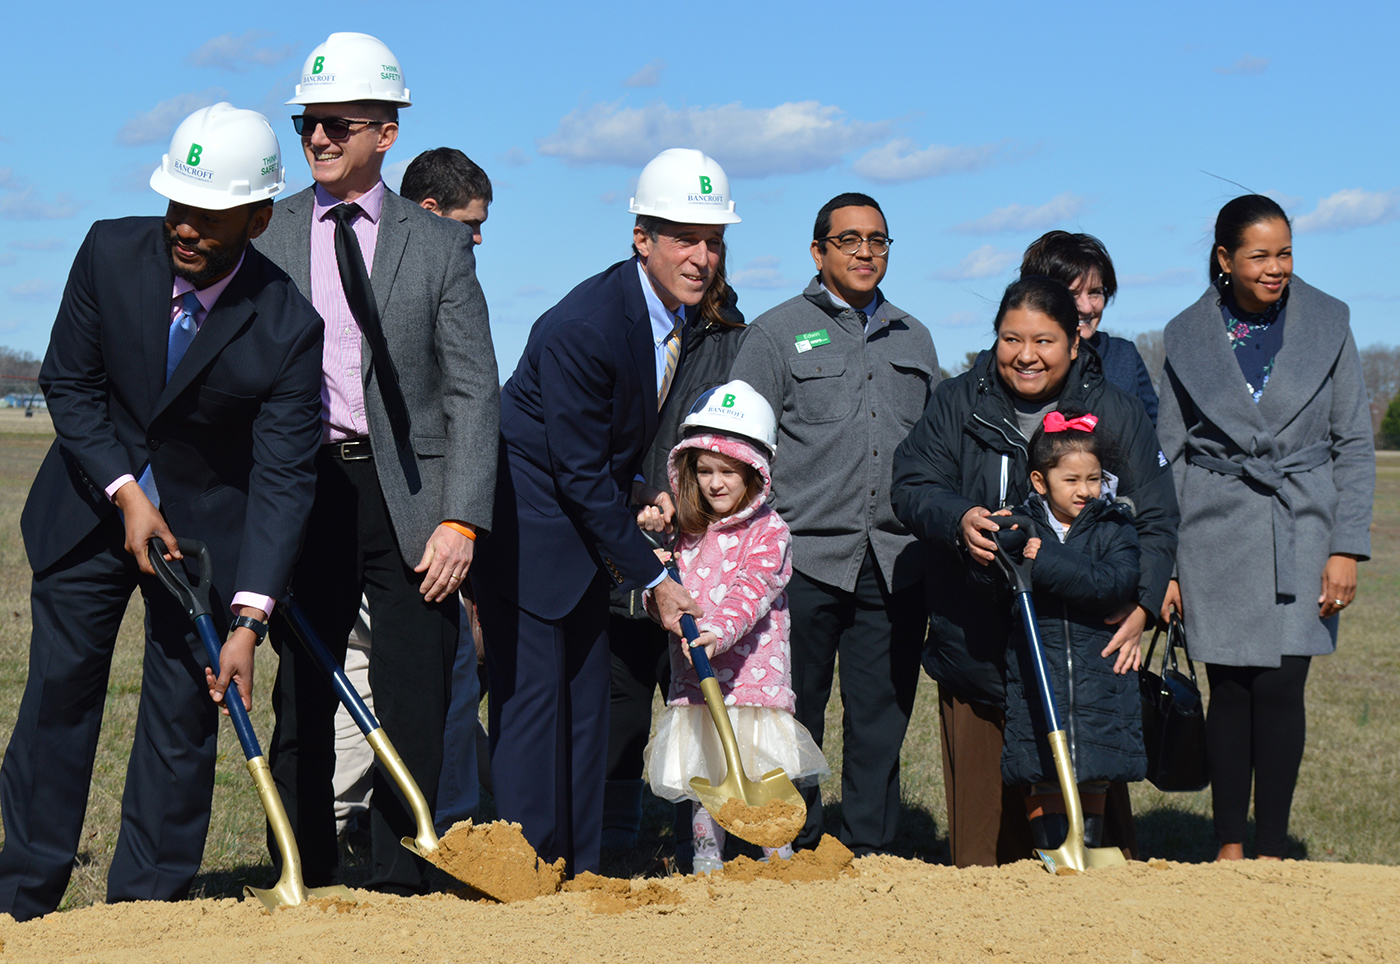 Governor John Carney, Board members and families shovel dirt during ground breaking ceremony.